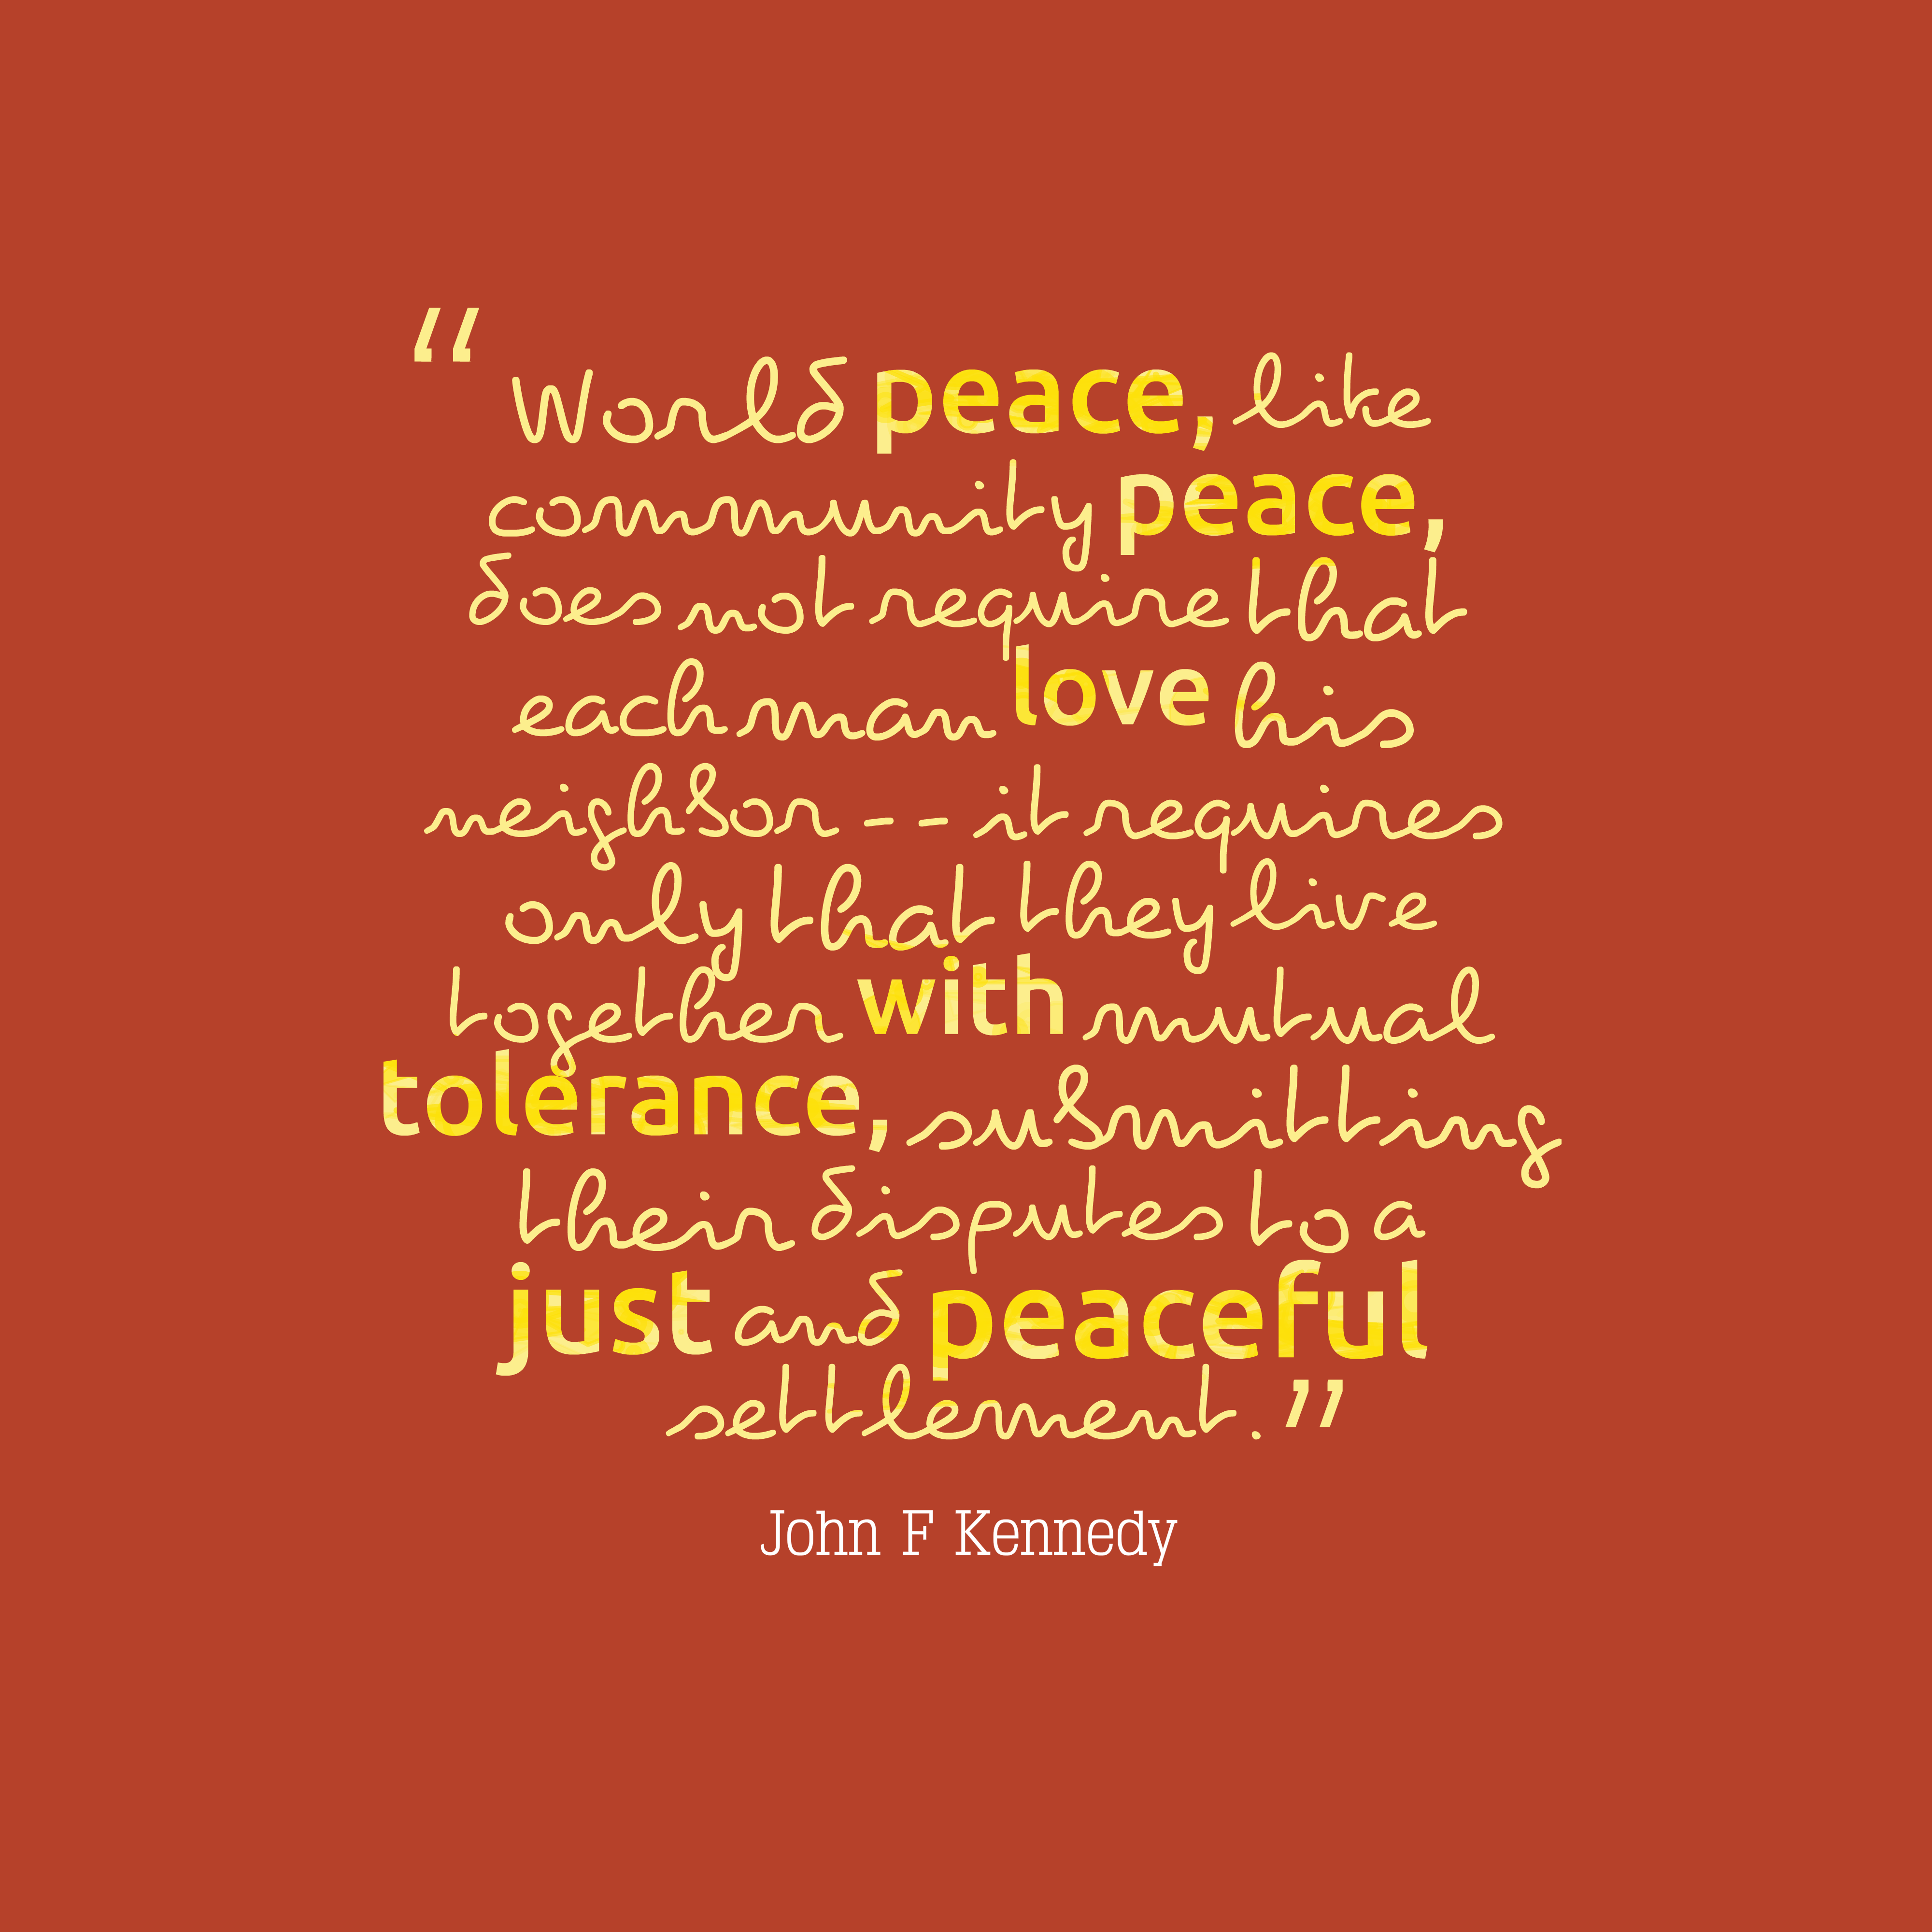 John F Kennedy Quote About Peace